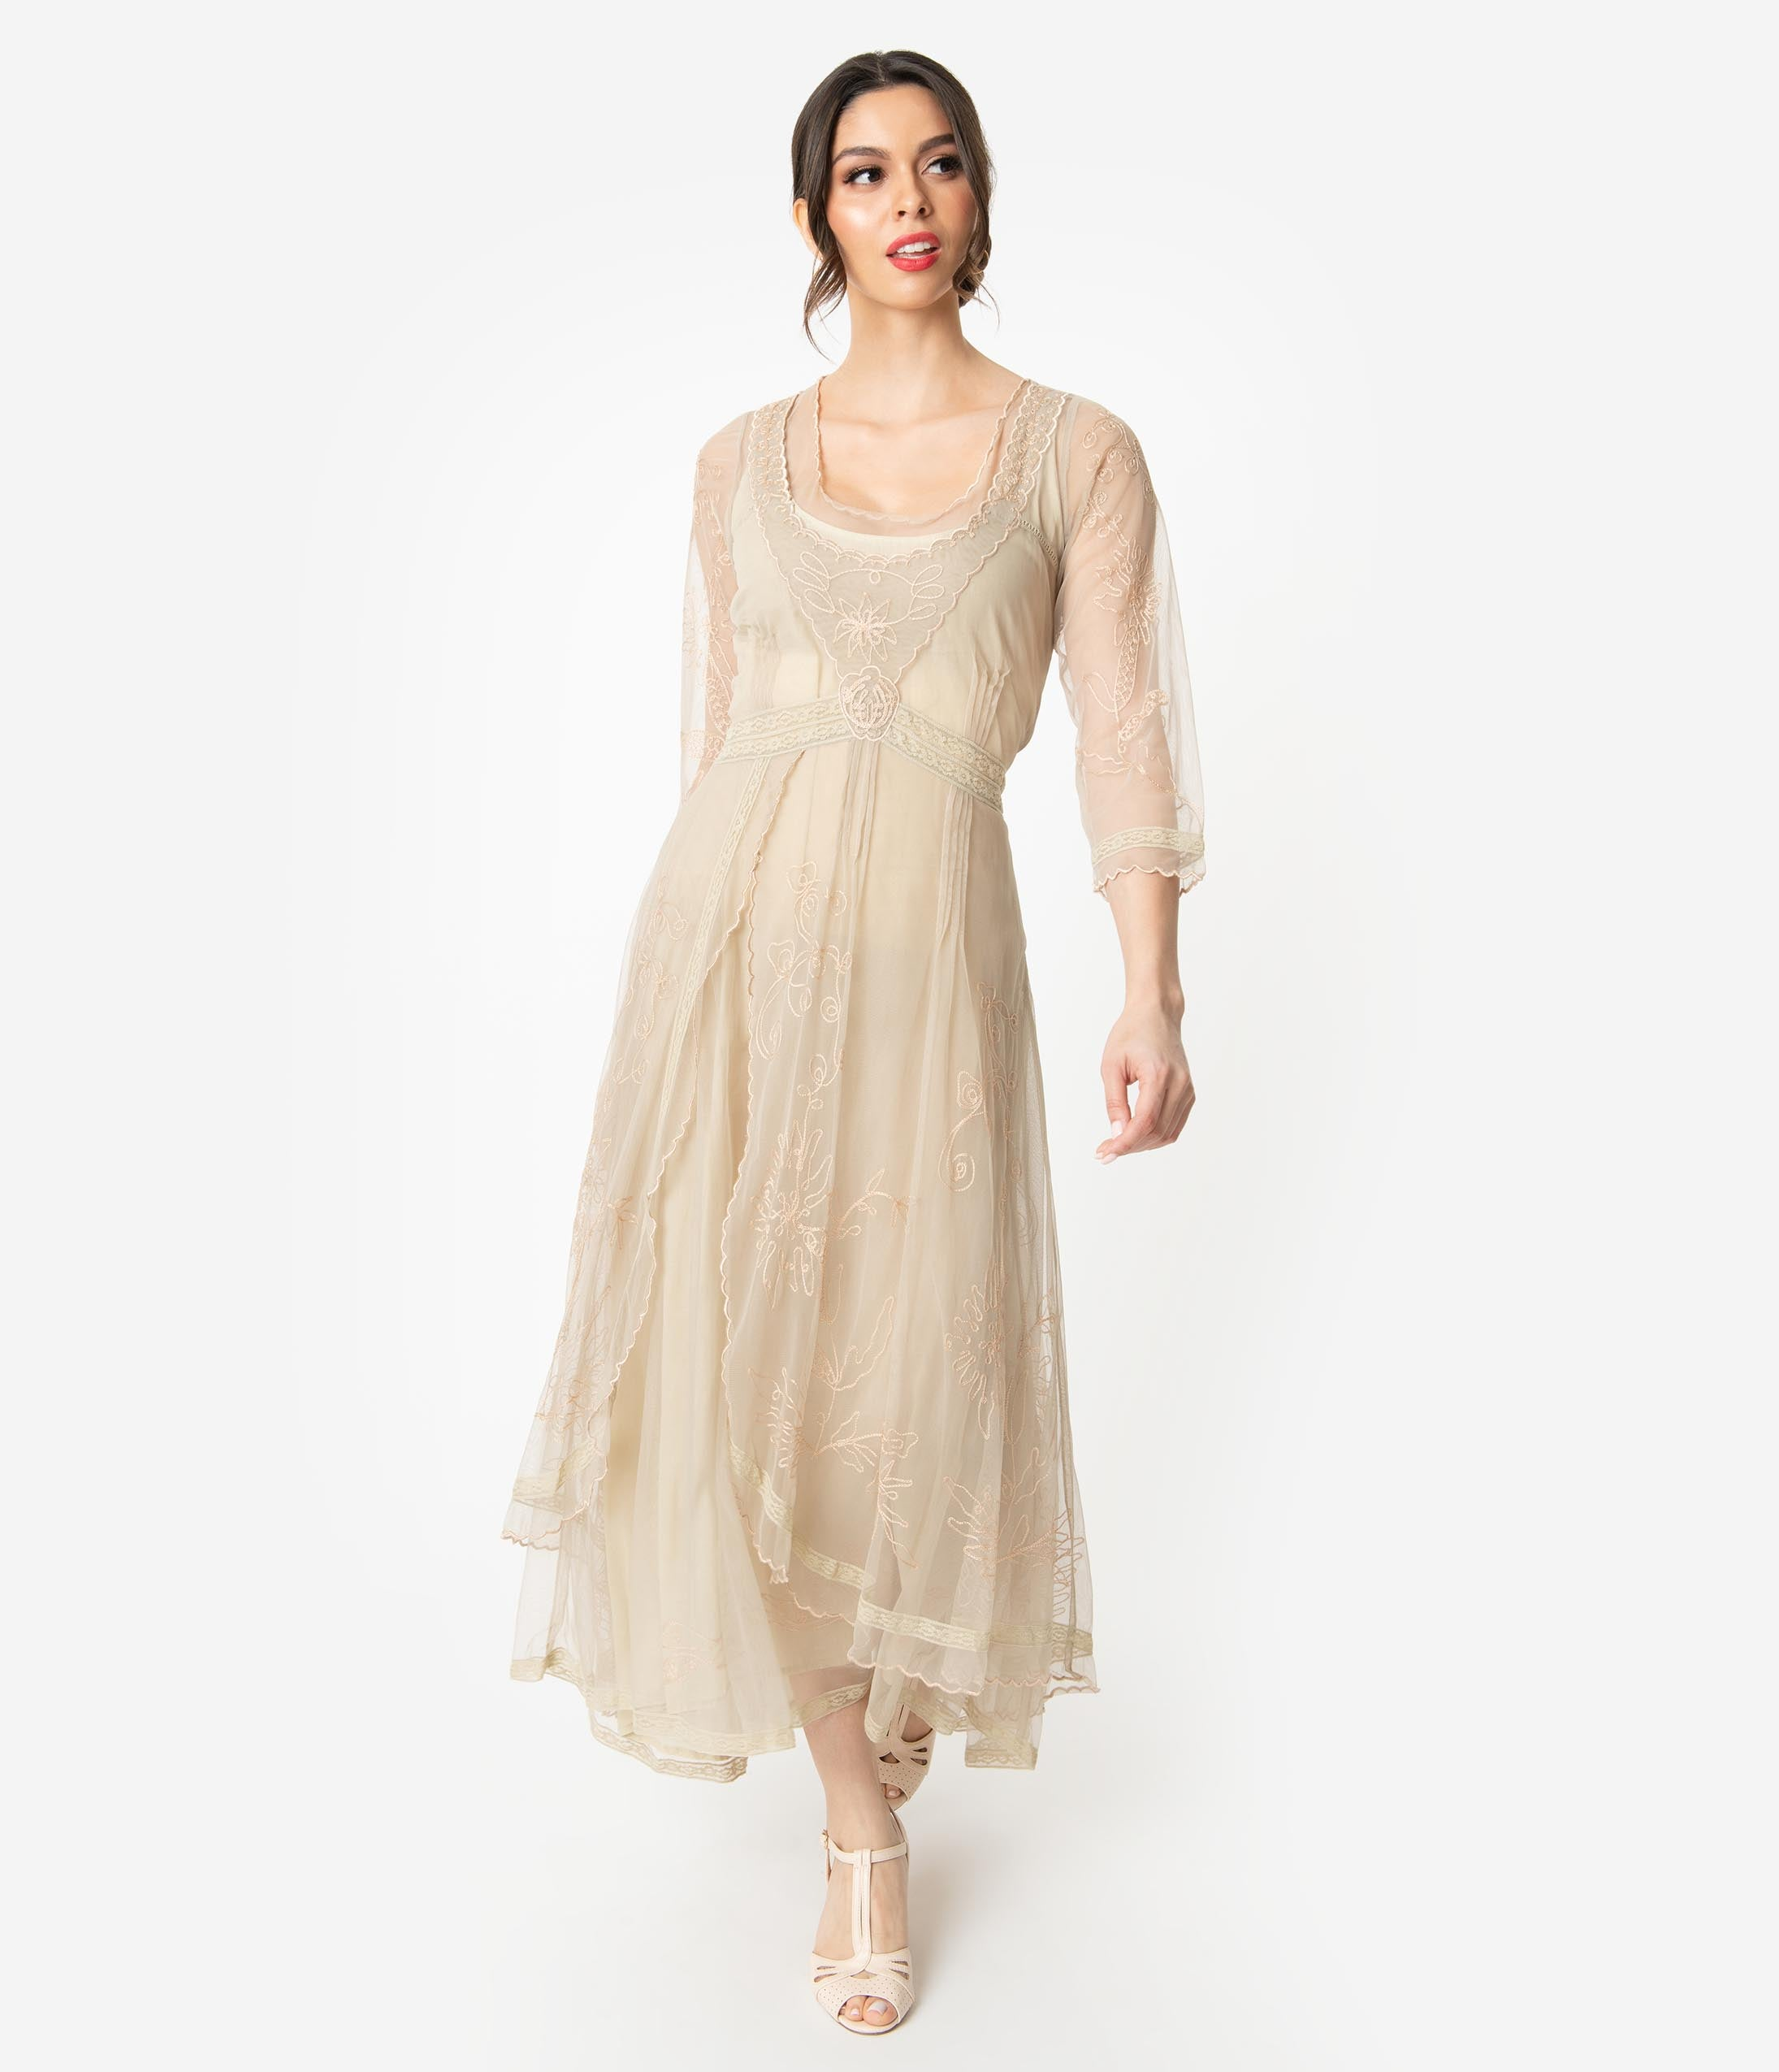 Vintage Tea Dresses, Floral Tea Dresses, Tea Length Dresses Vintage Cream Embroidered Tulle Downton Abbey Edwardian Tea Party Flapper Dress $258.00 AT vintagedancer.com